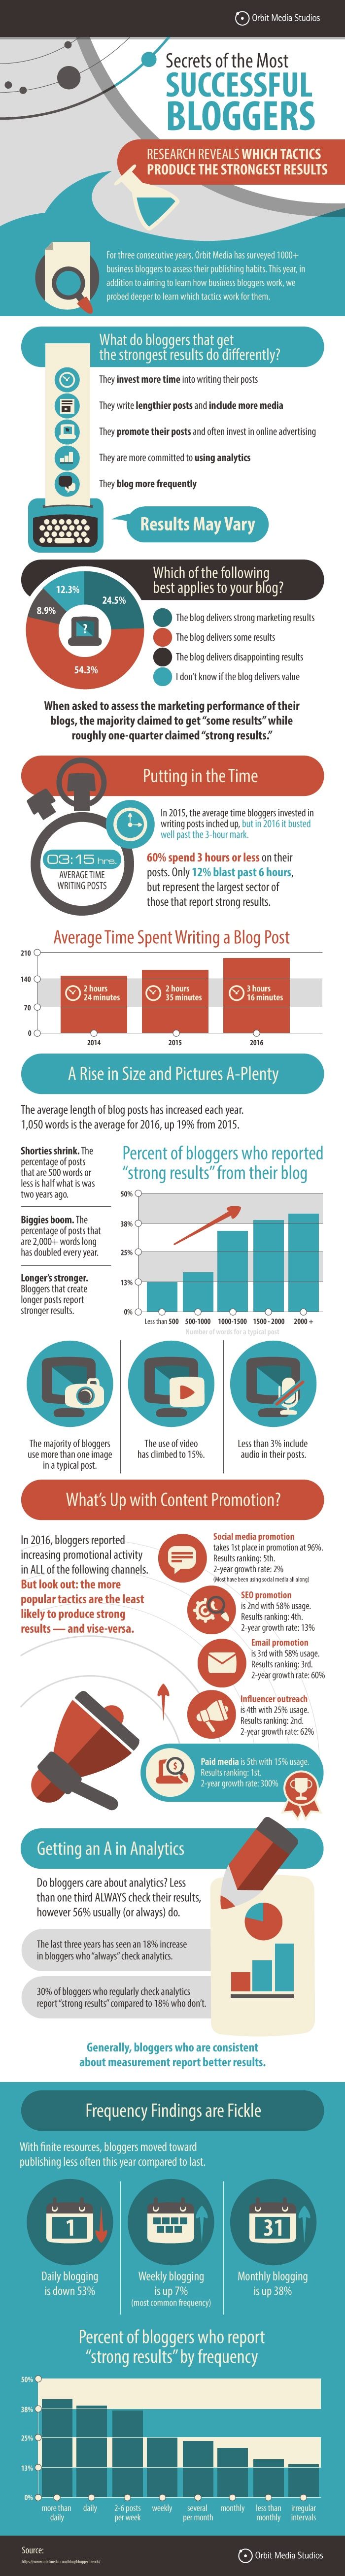 SuccessfulBloggers_Orbitmedia - final.jpg  Which Blogging Tips Get Results? [New Survey Data] SuccessfulBloggers Orbitmedia 20  20final